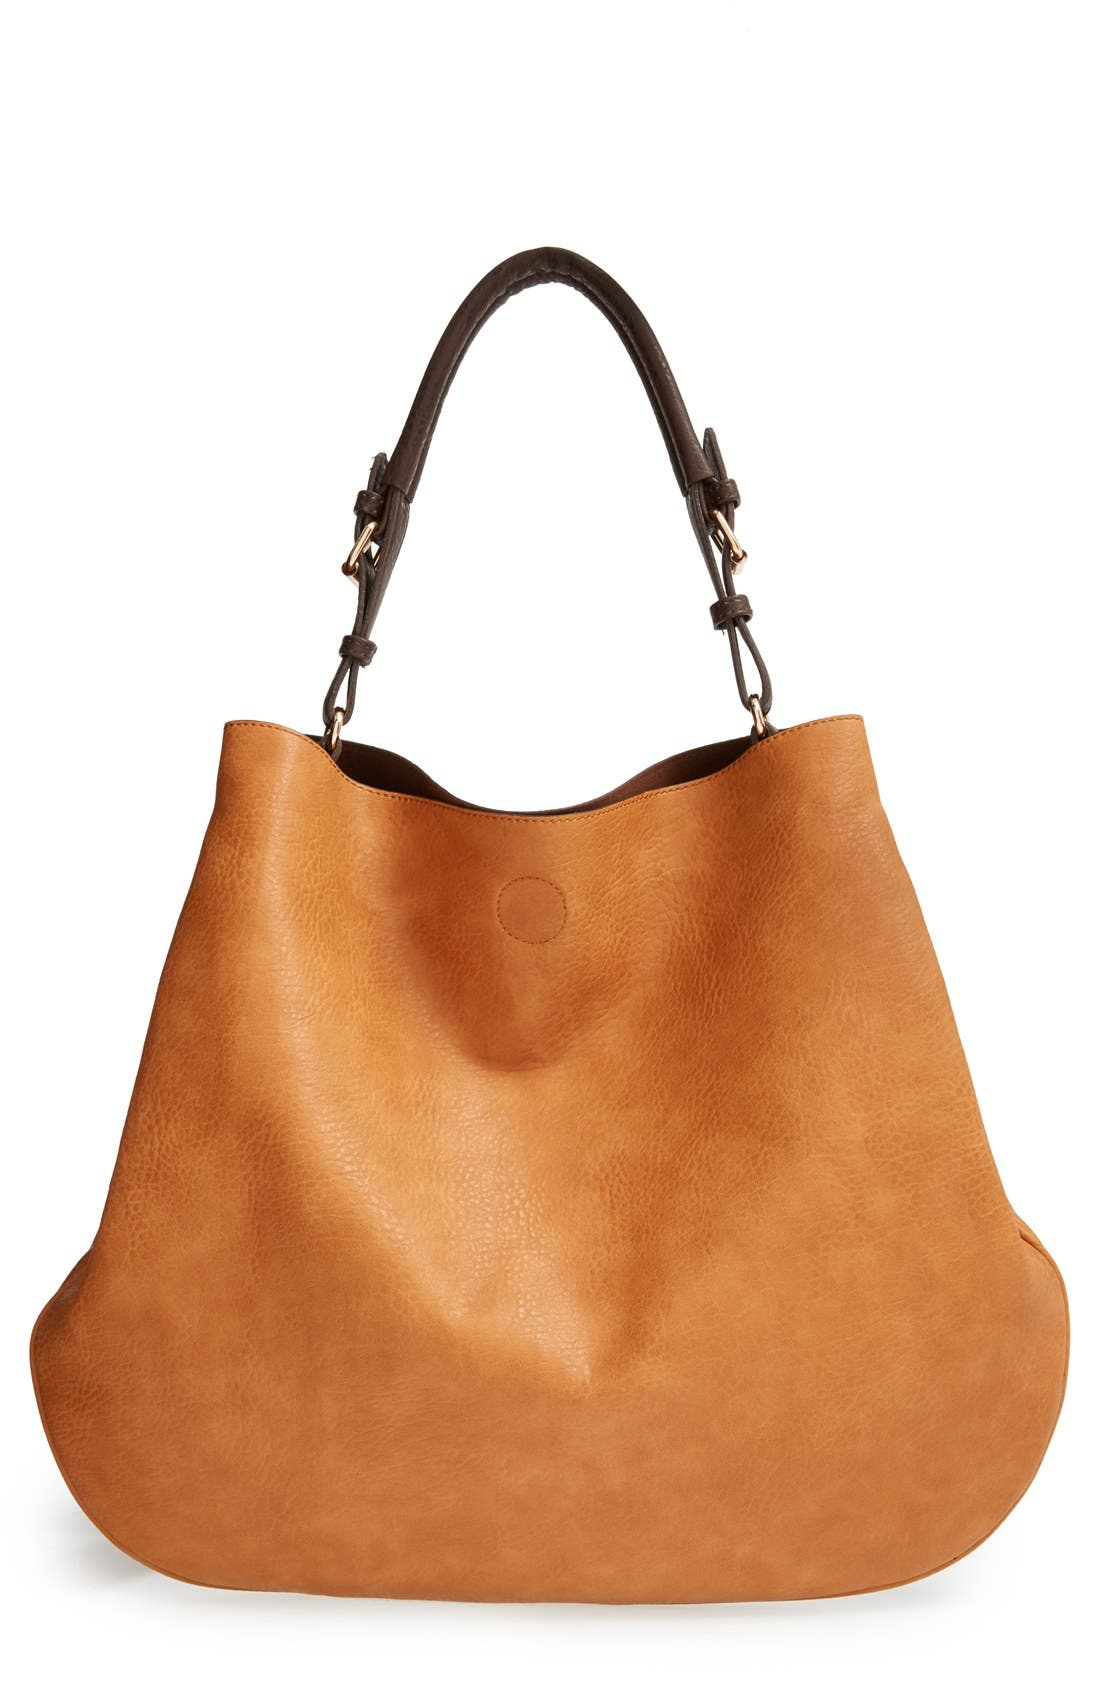 Main Image - Sole Society 'Capri' Faux Leather Tote